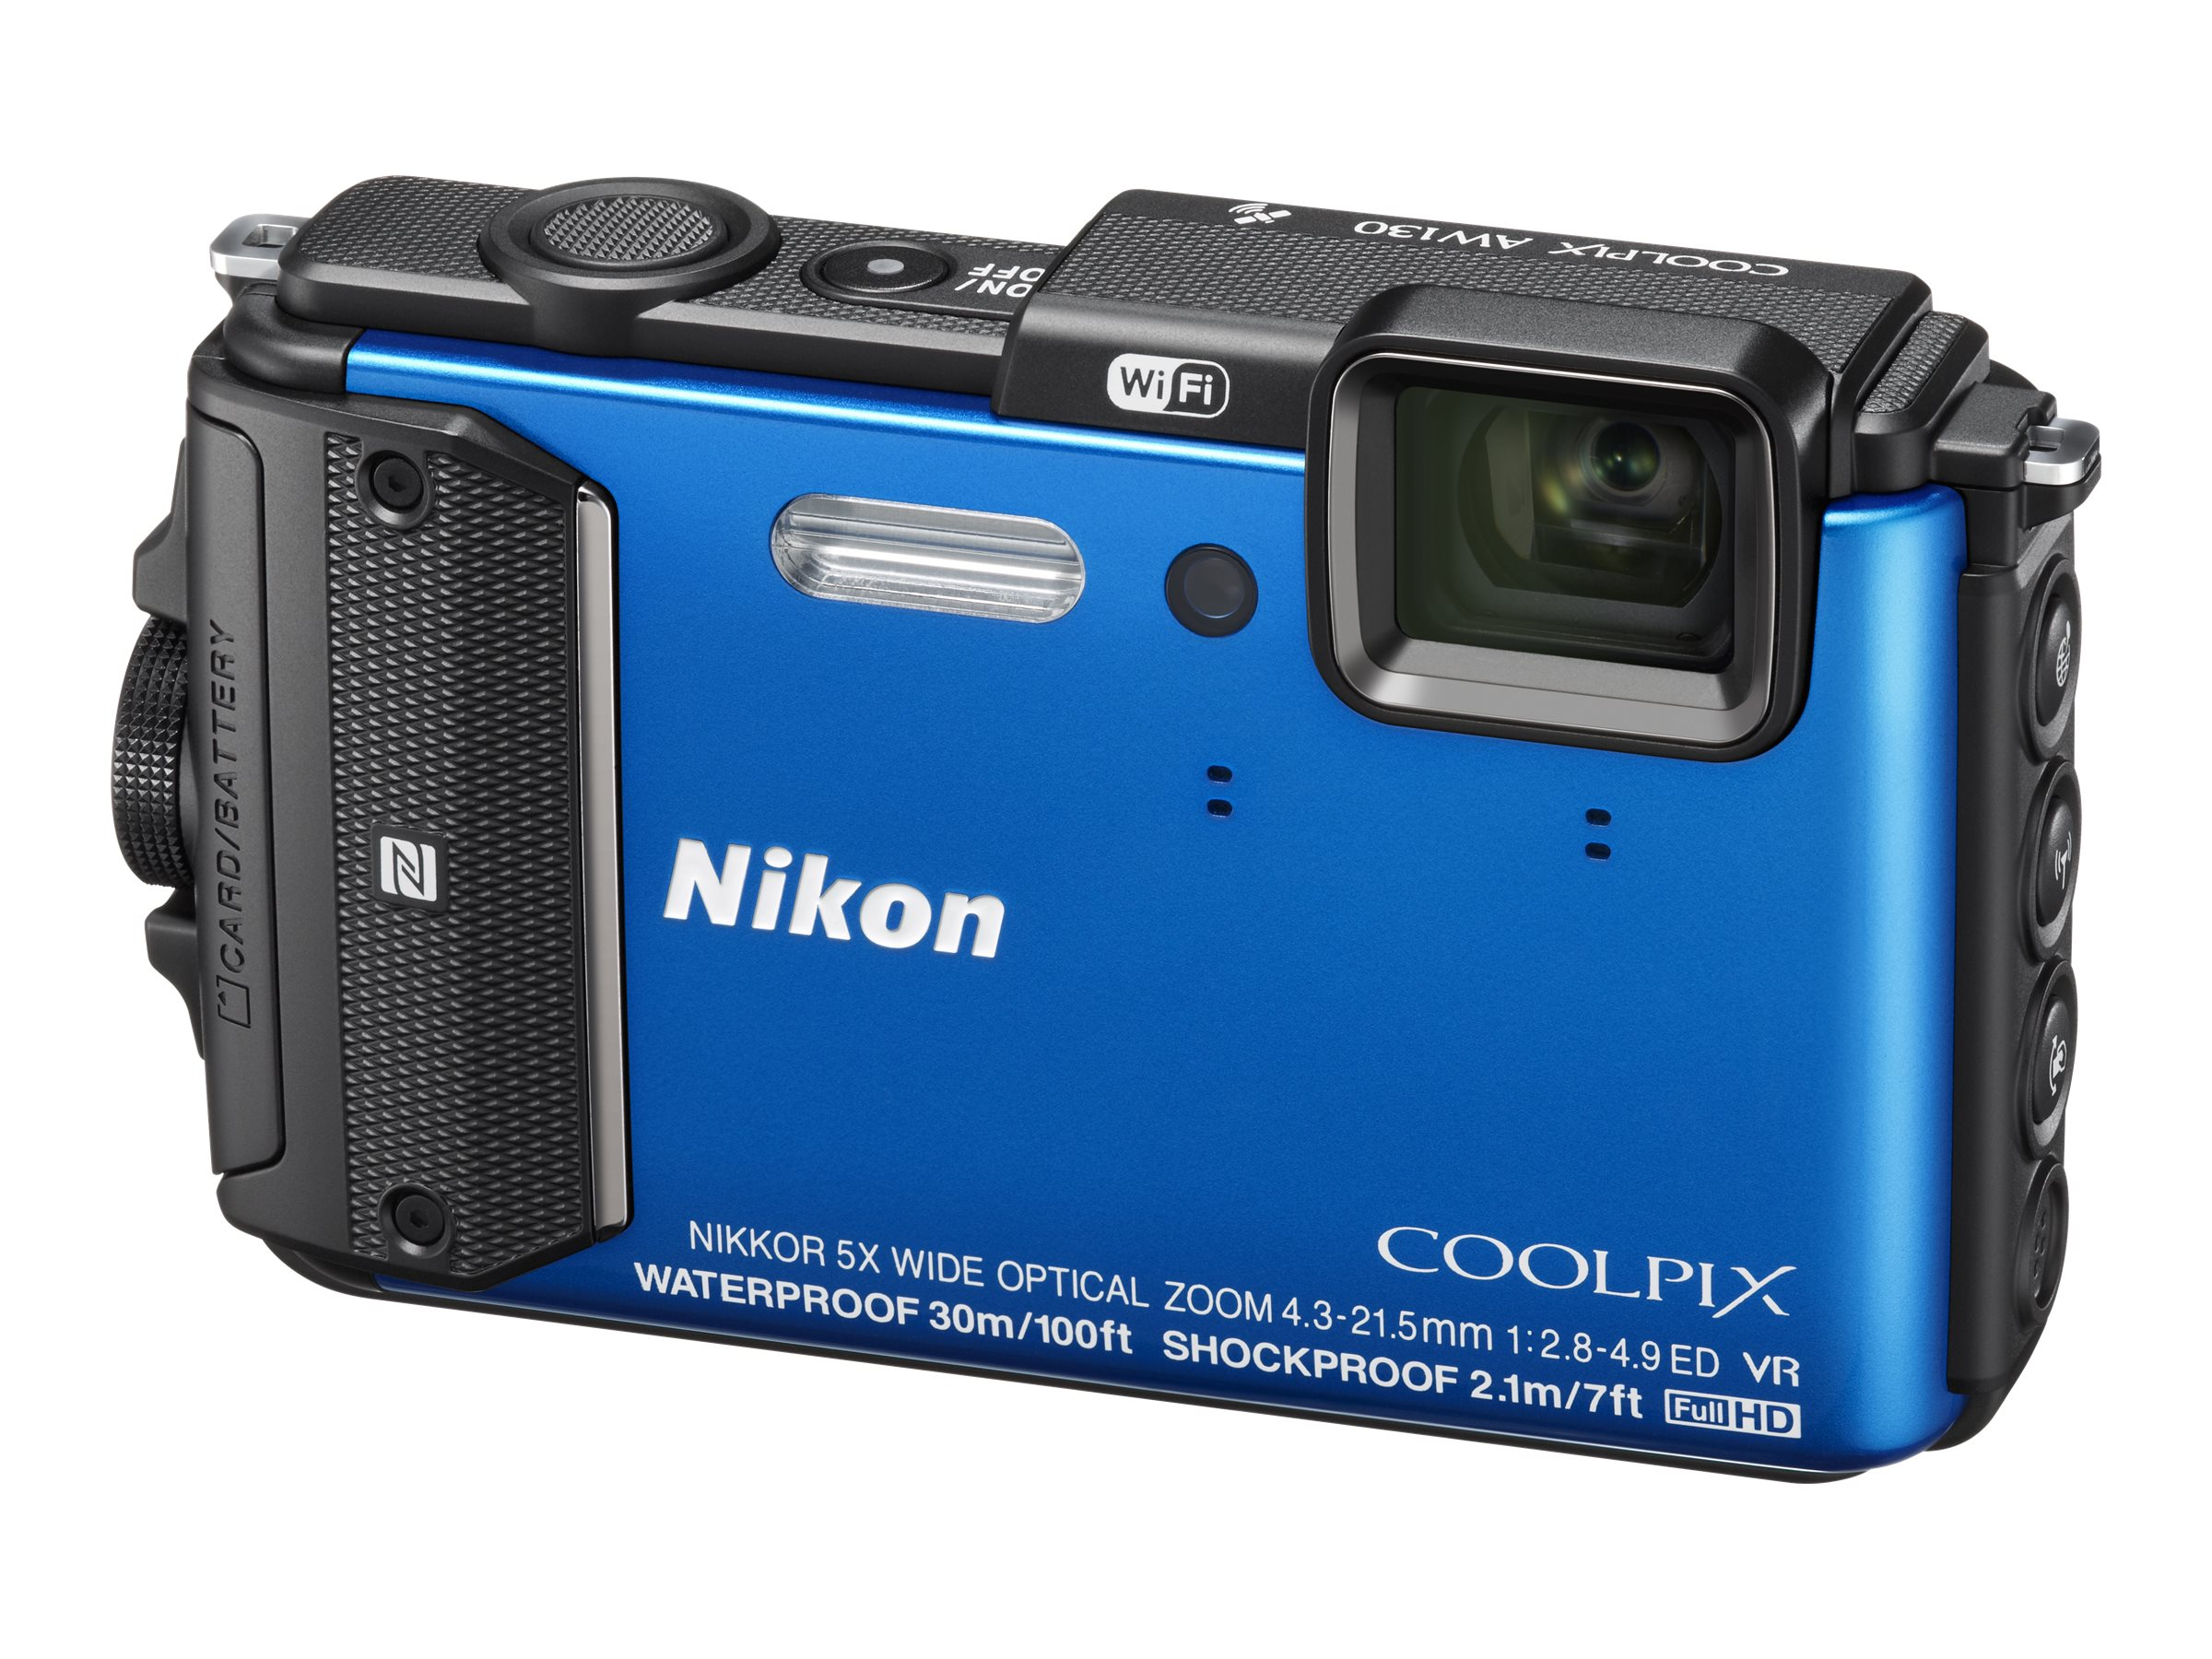 Nikon COOLPIX AW130 Waterproof Digital Camera, 16MP, 5x Zoom, Blue, 26492, 19249130, Cameras - Digital - Point & Shoot